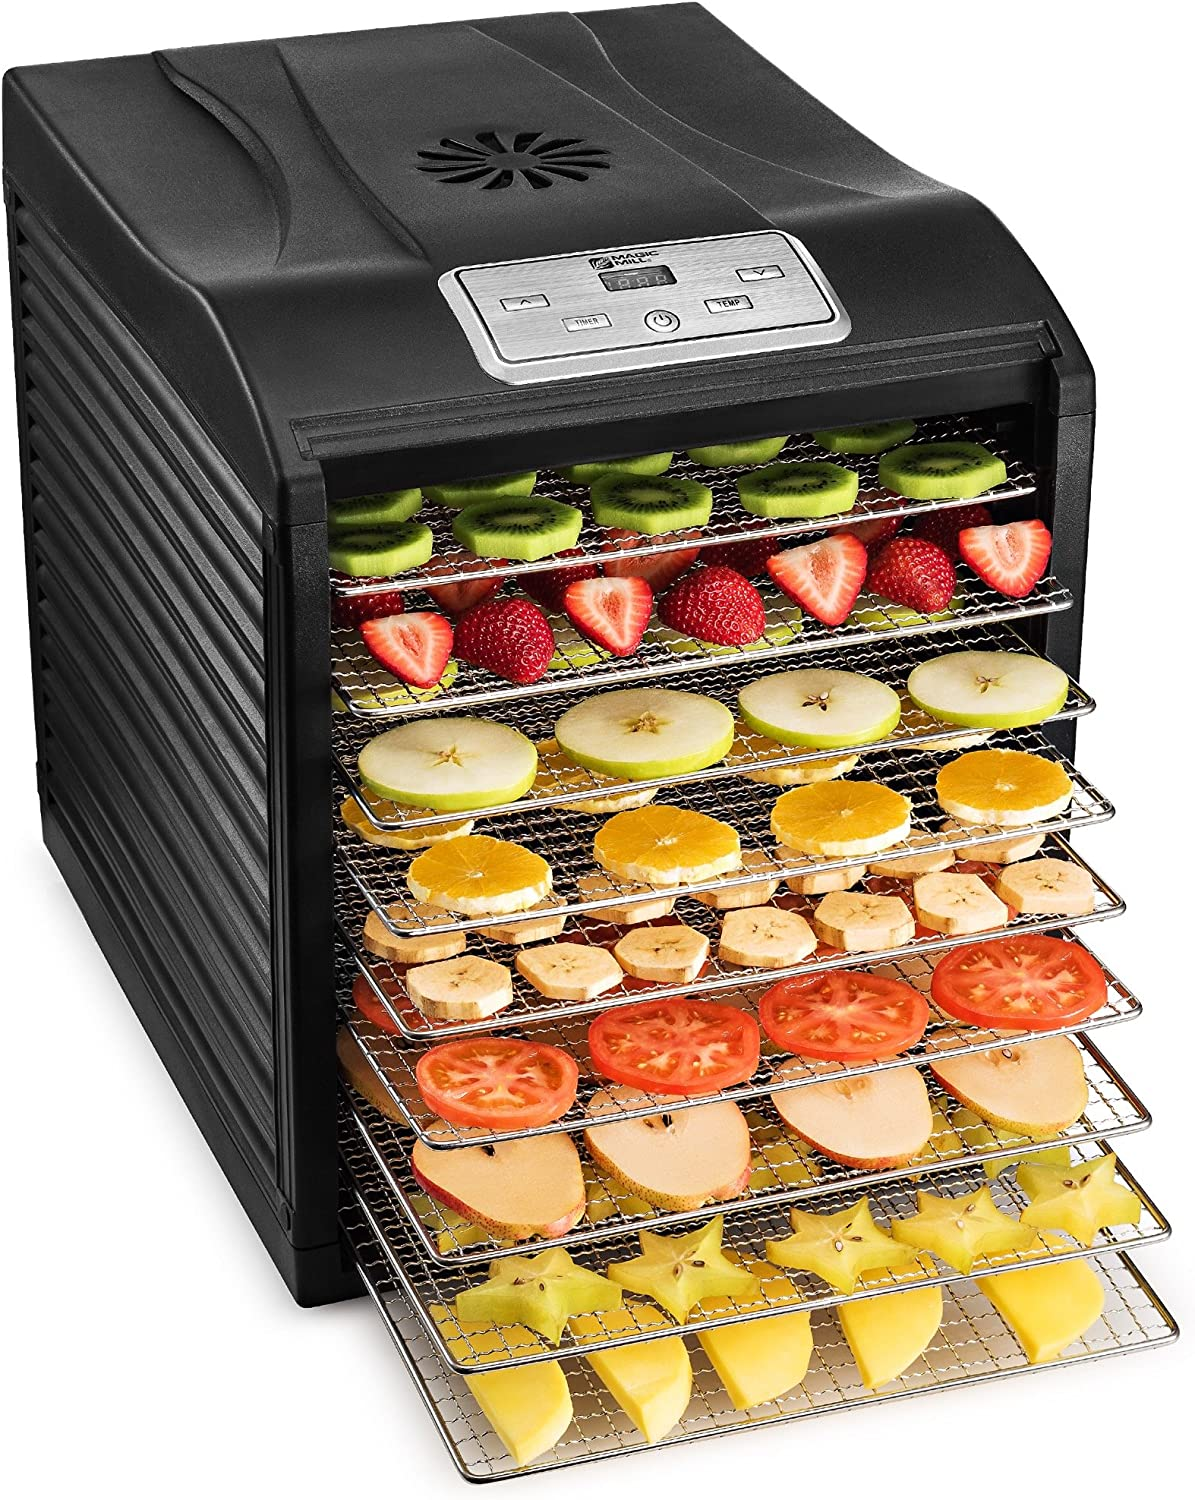 Magic Mill Food Dehydrator Machine – Easy Setup, Digital Adjustable Timer and Temperature Control Dryer for Jerky, Herb, Meat, Beef, Fruit and To Dry Vegetables Over Heat Protection 9 Stainless Steel Trays